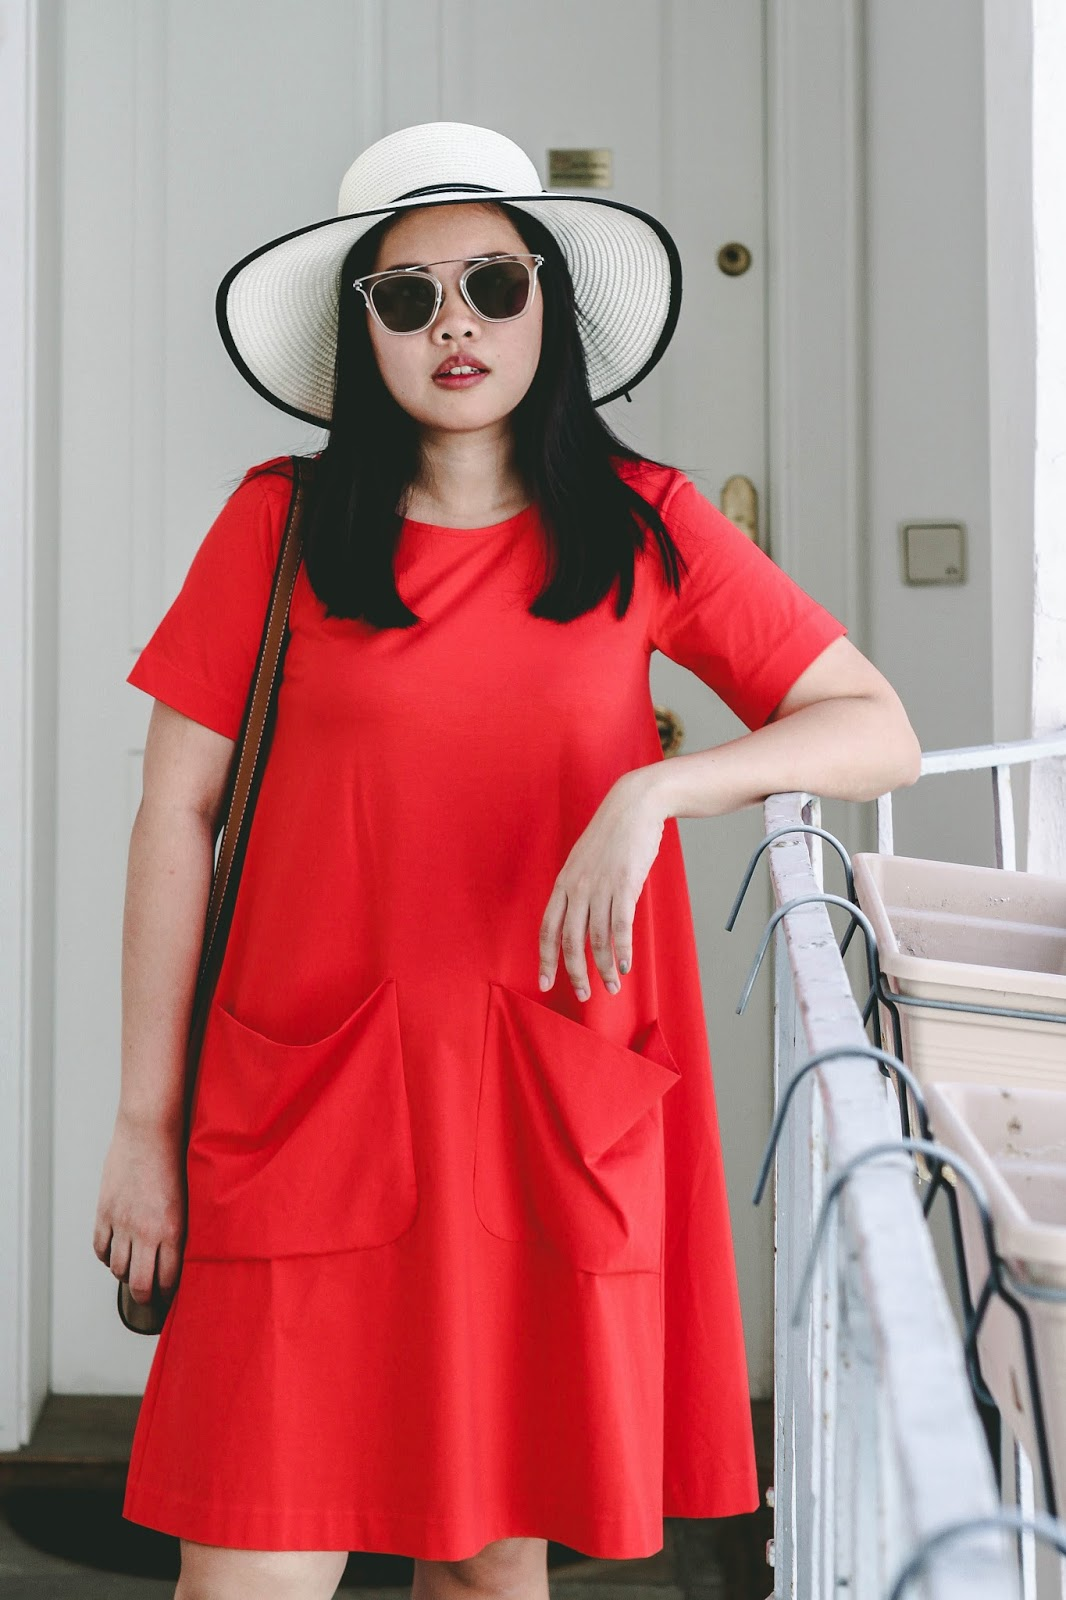 singapore blogger style stylist stylexstyle red cos street photographer look book outfit summer holiday dress